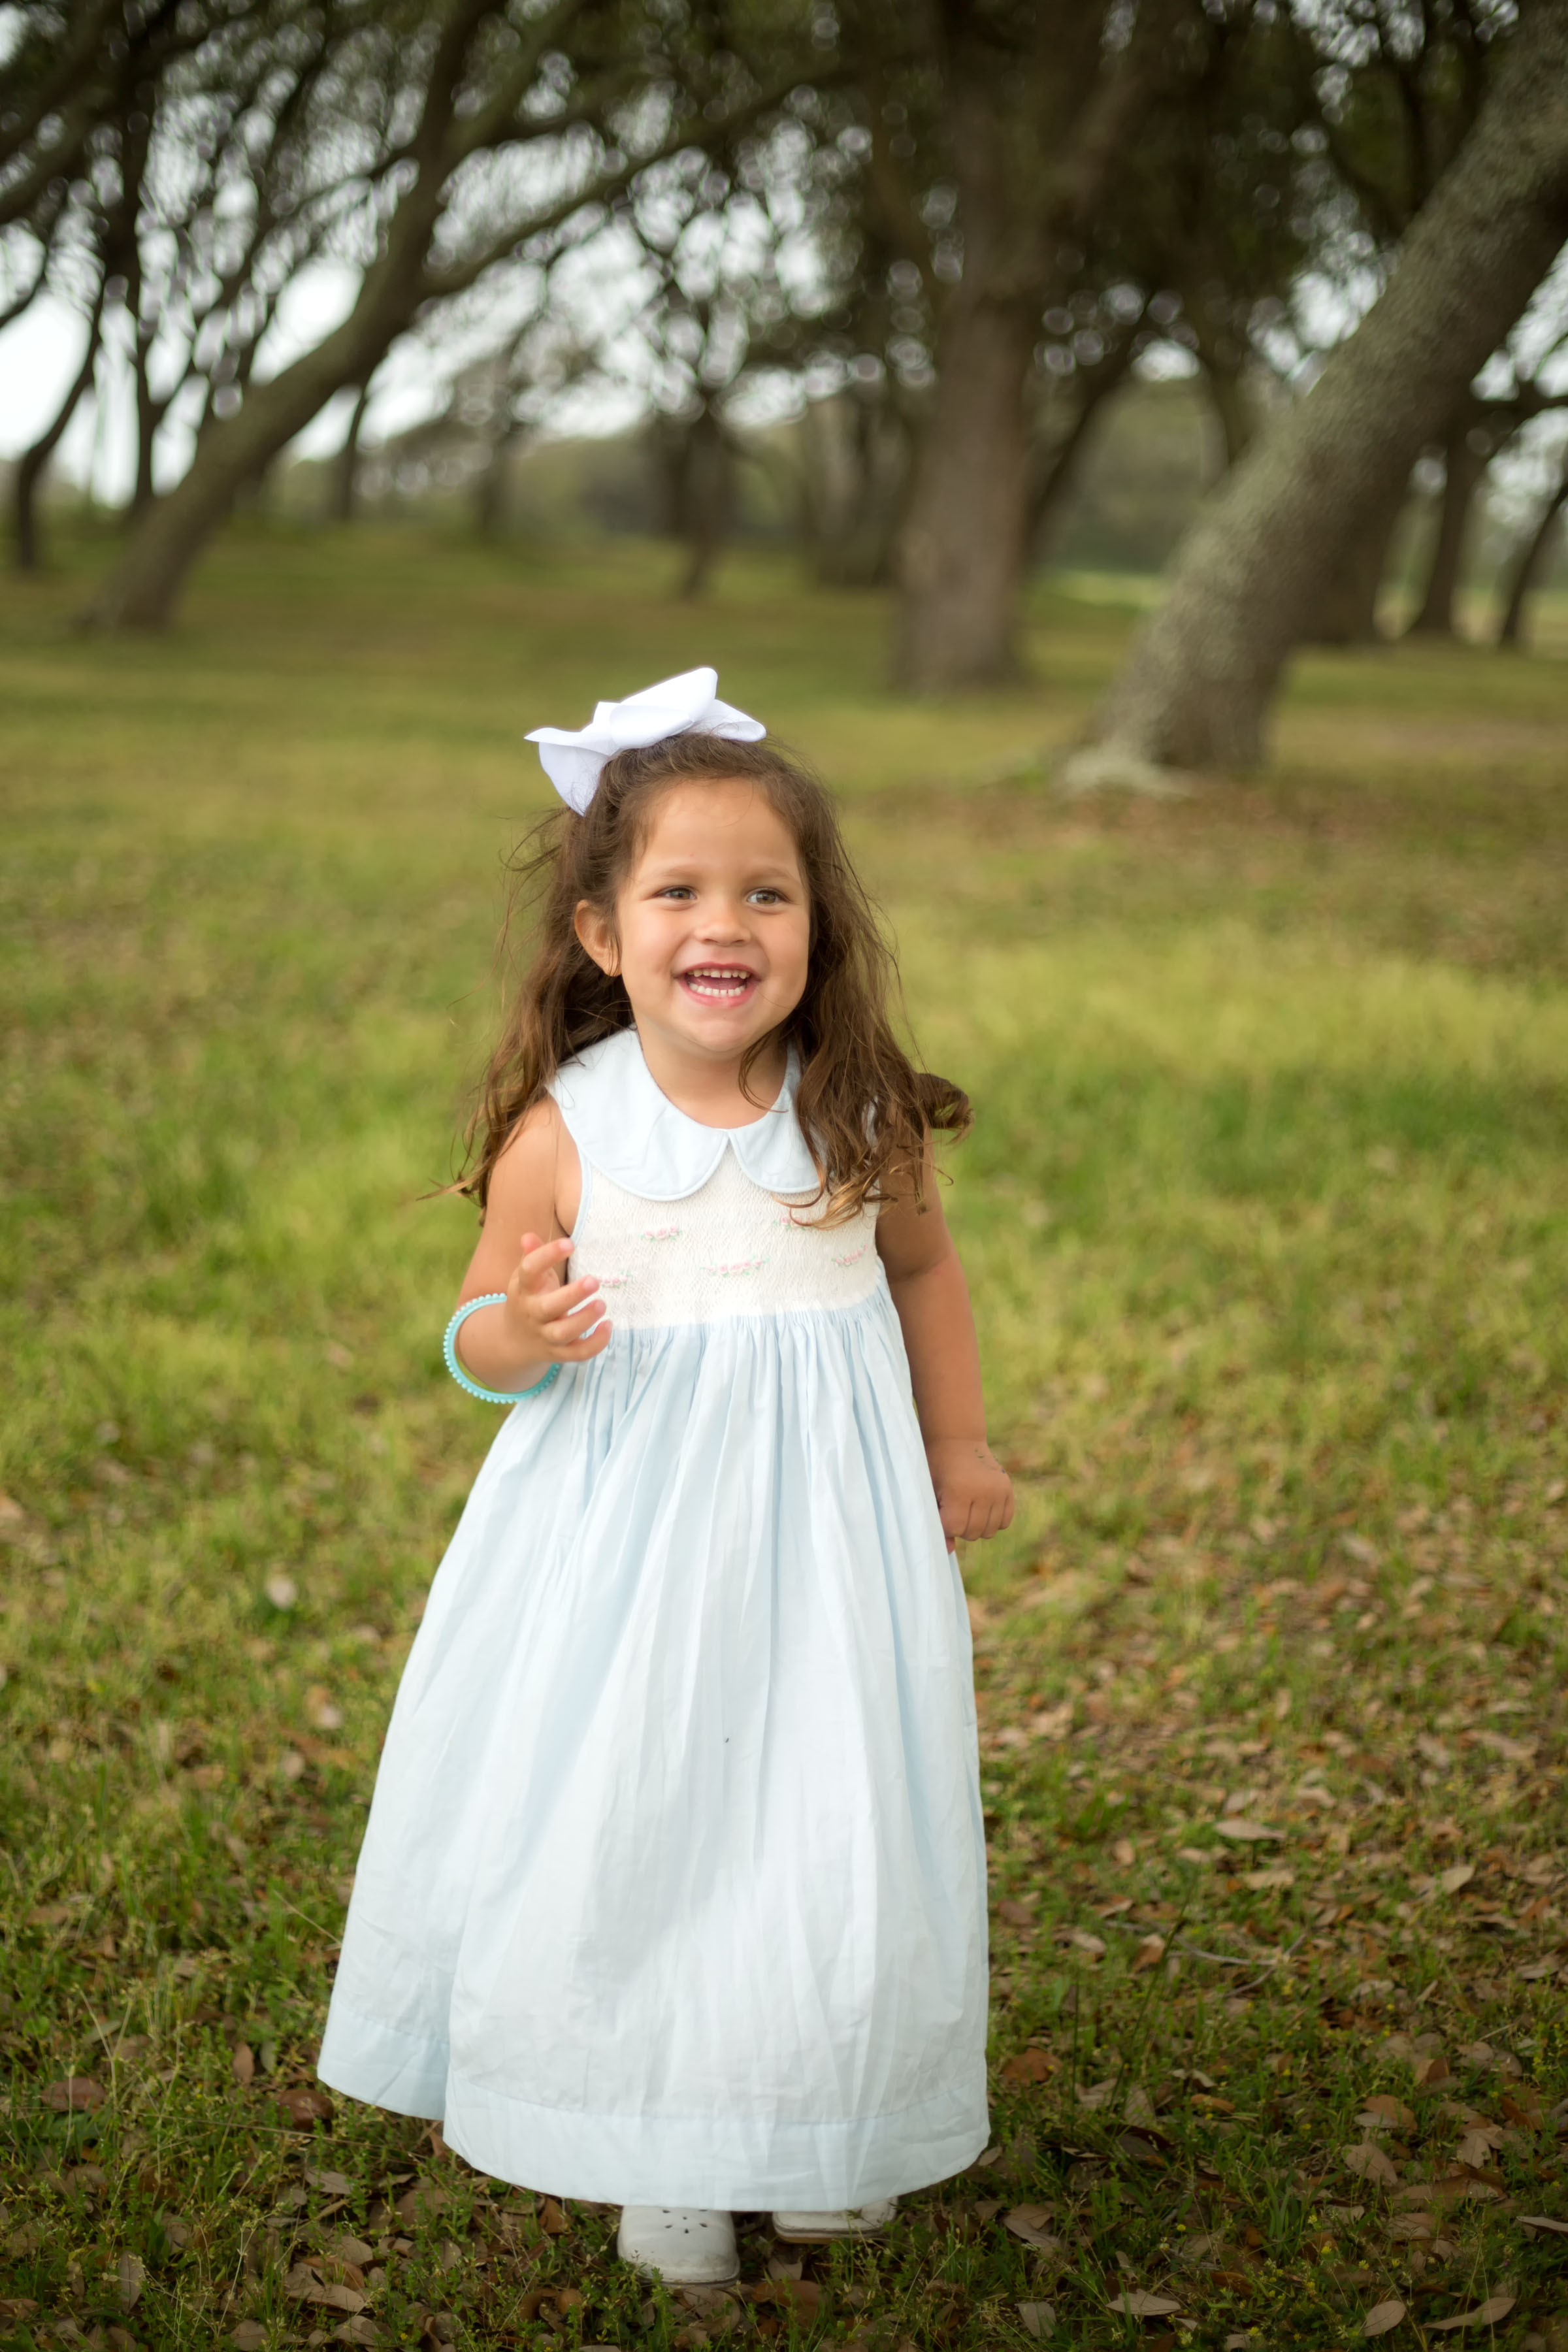 MD-VA-DC-Photographer-Tiffany-Abruzzo-Family-Mini-Session-9.jpg